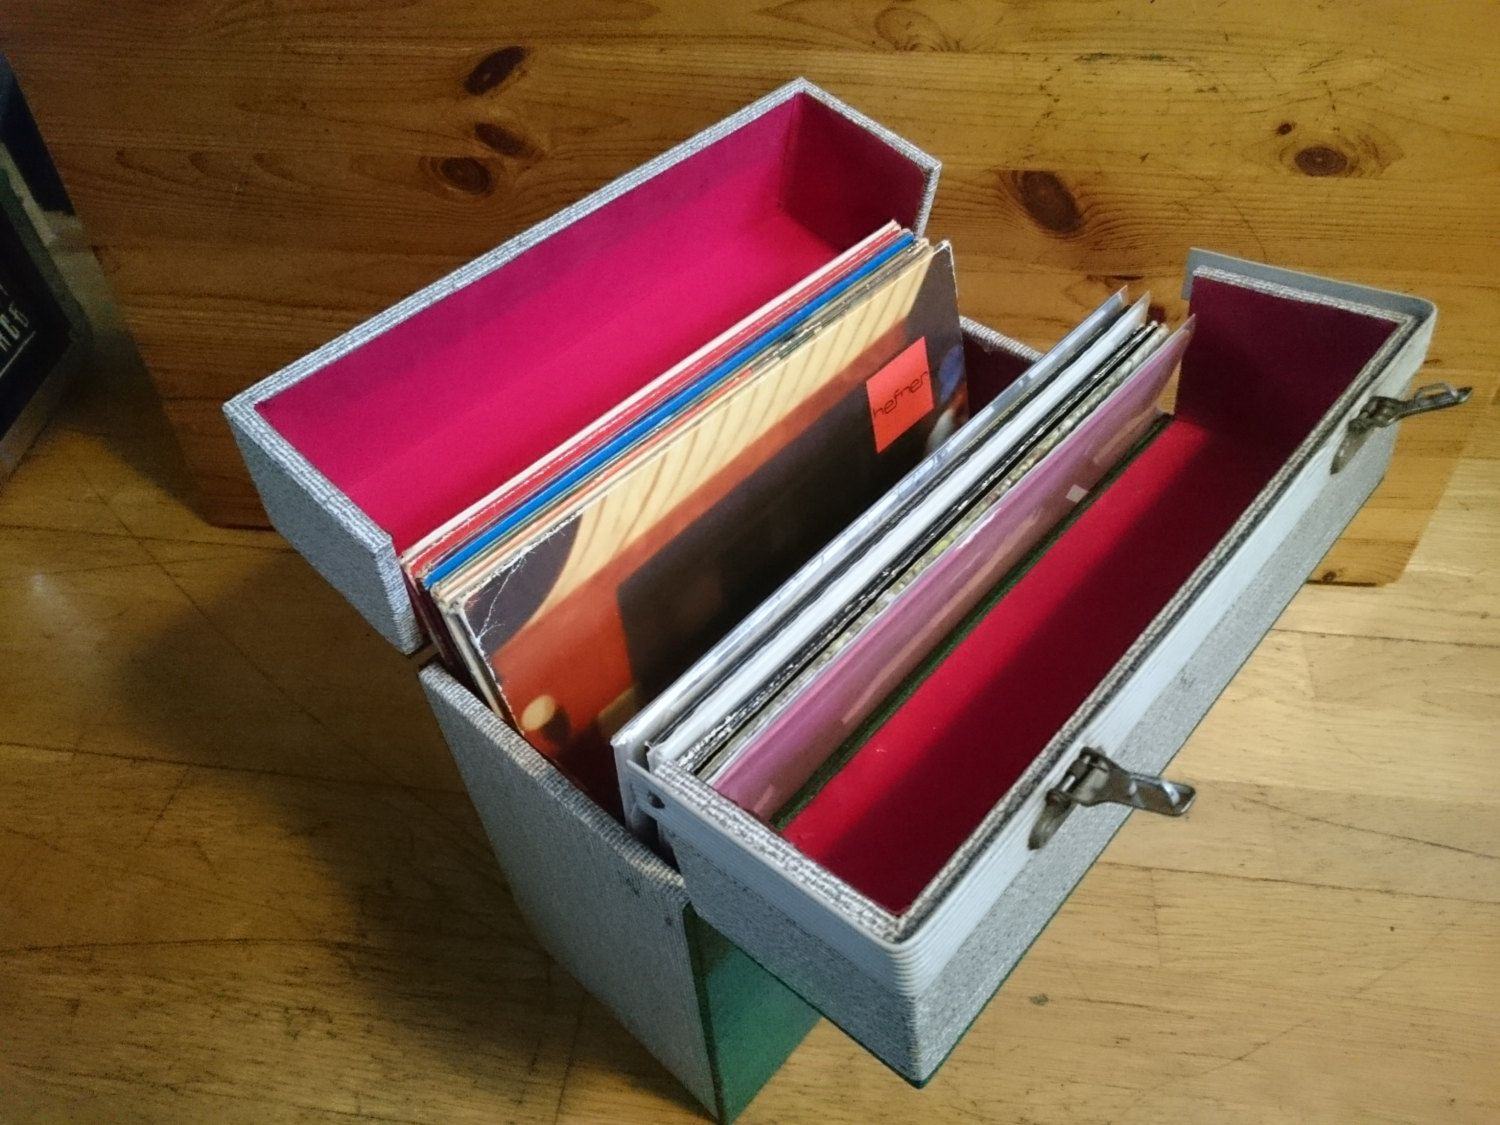 how to store vinyl records without covers